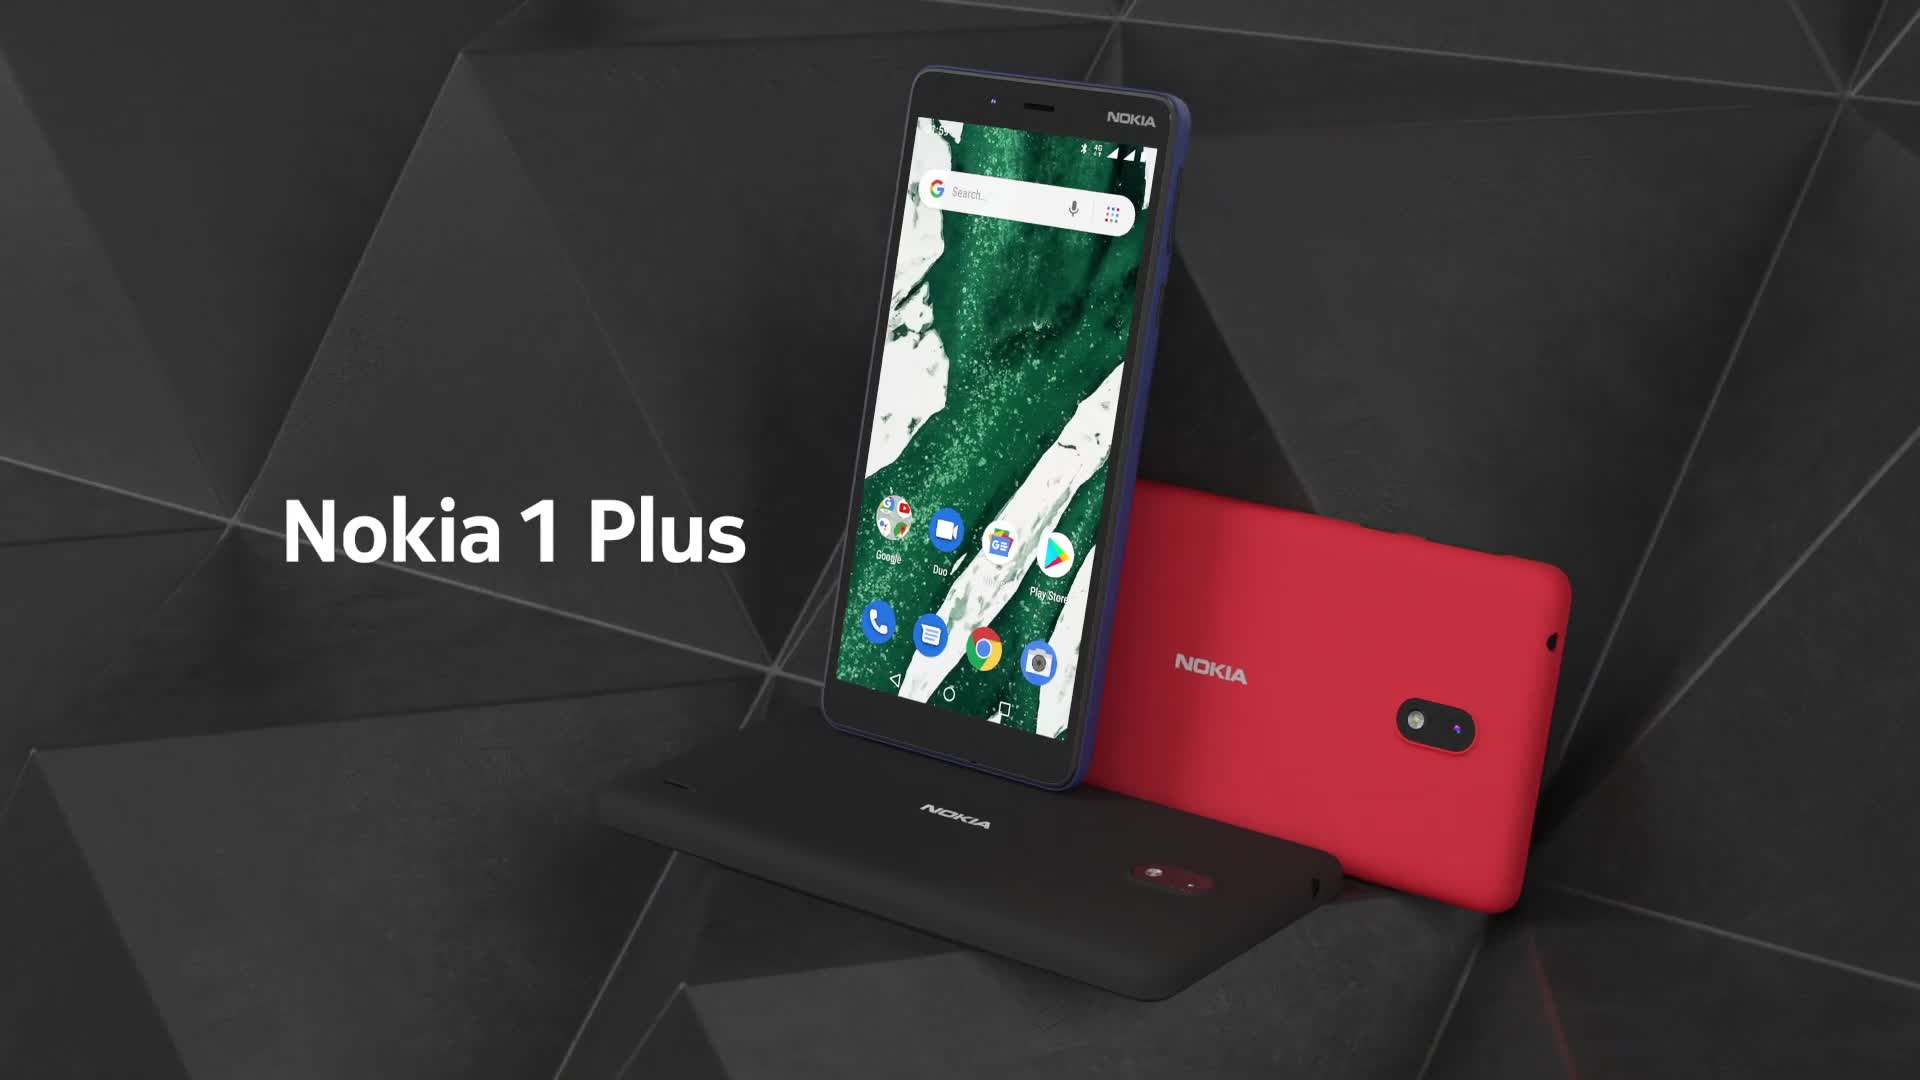 Smartphone, Nokia, Mwc, Mobile World Congress, MWC 2019, Mobile World Congress 2019, Nokia 1 Plus